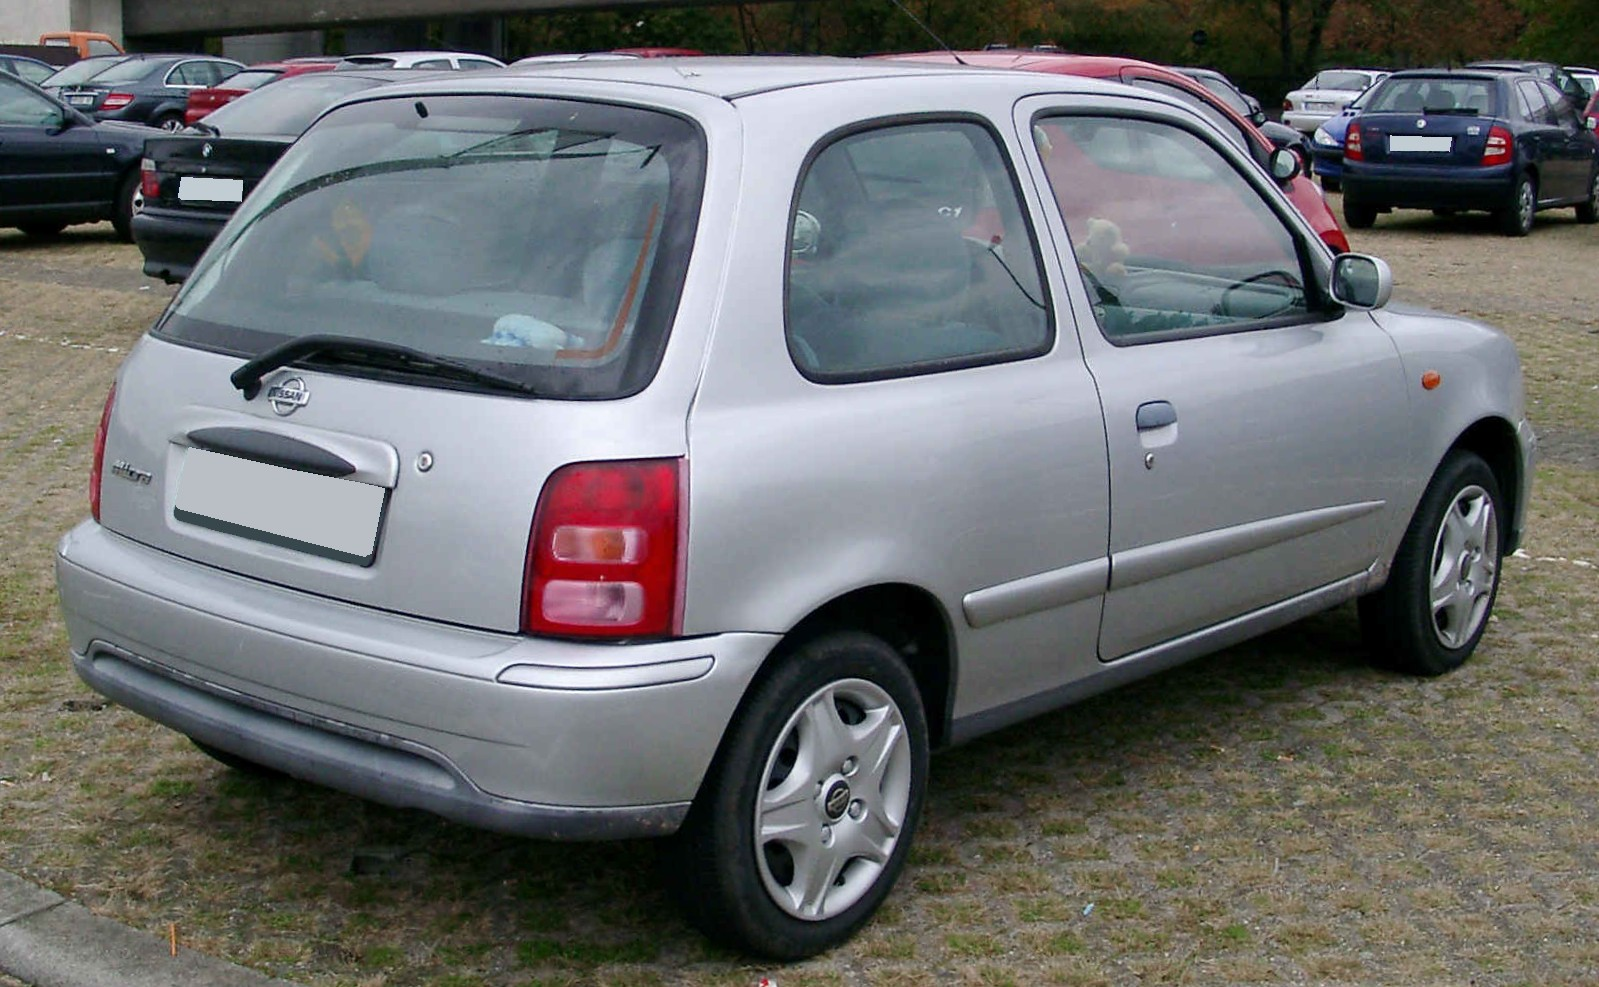 File:Nissan Micra rear 20081017.jpg